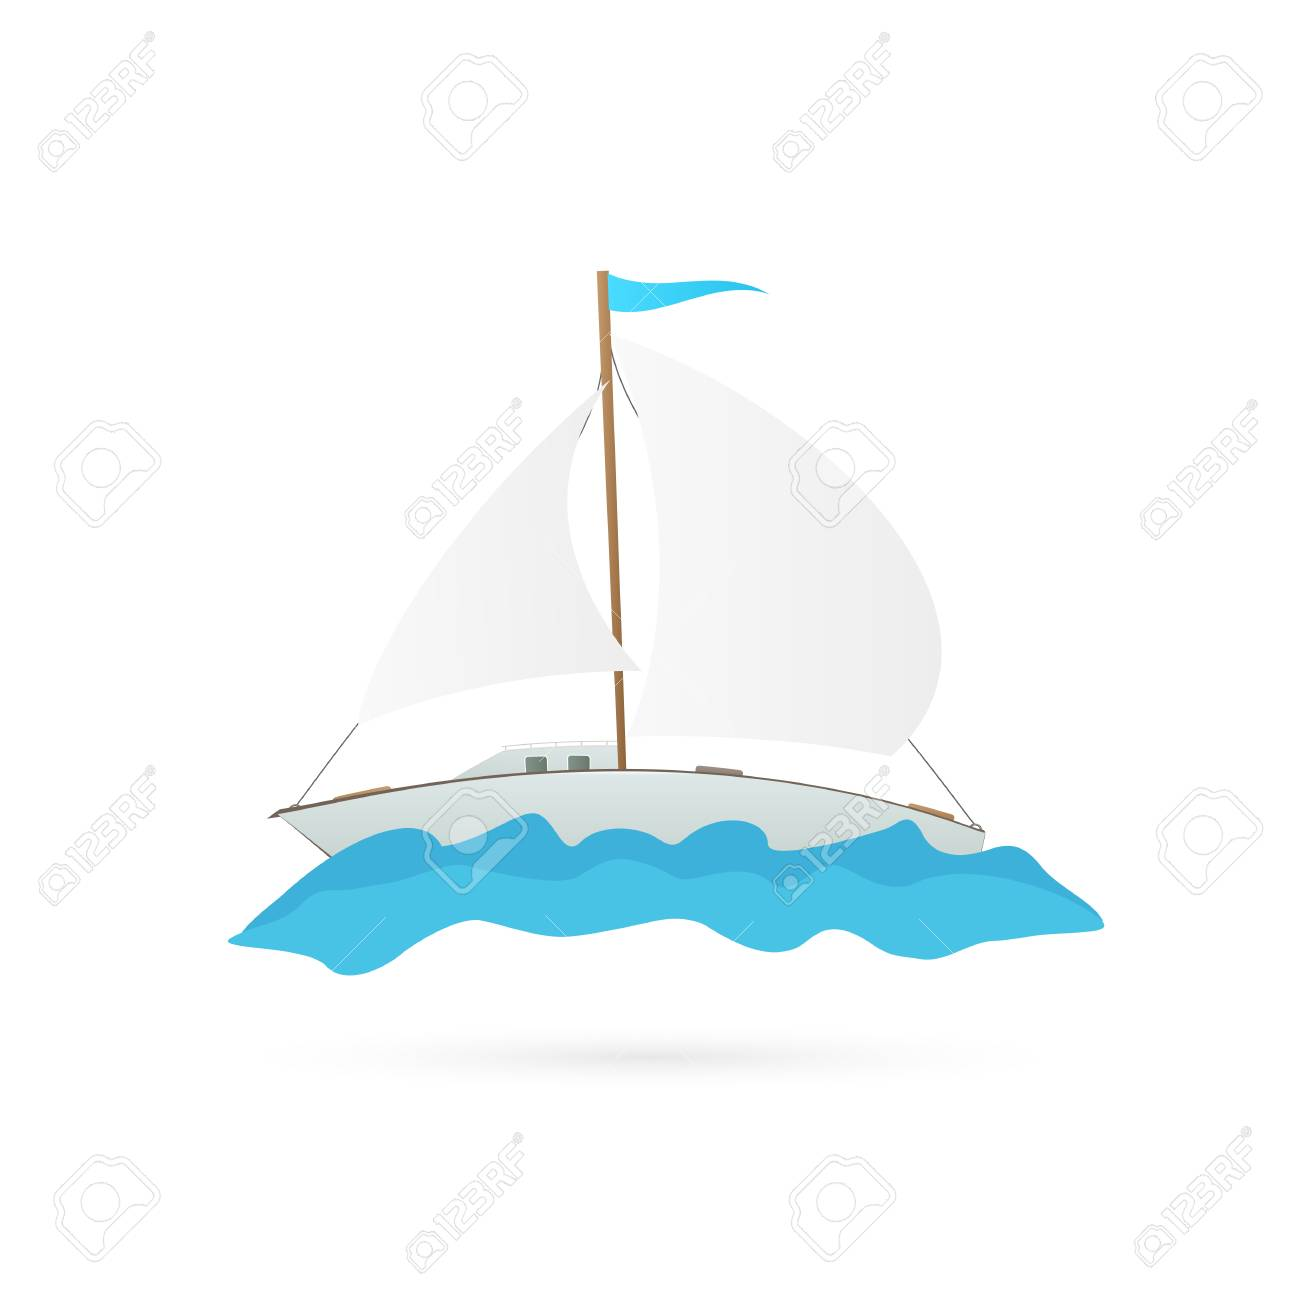 Illustration of a sailboat isolated on a white background. - 97016103